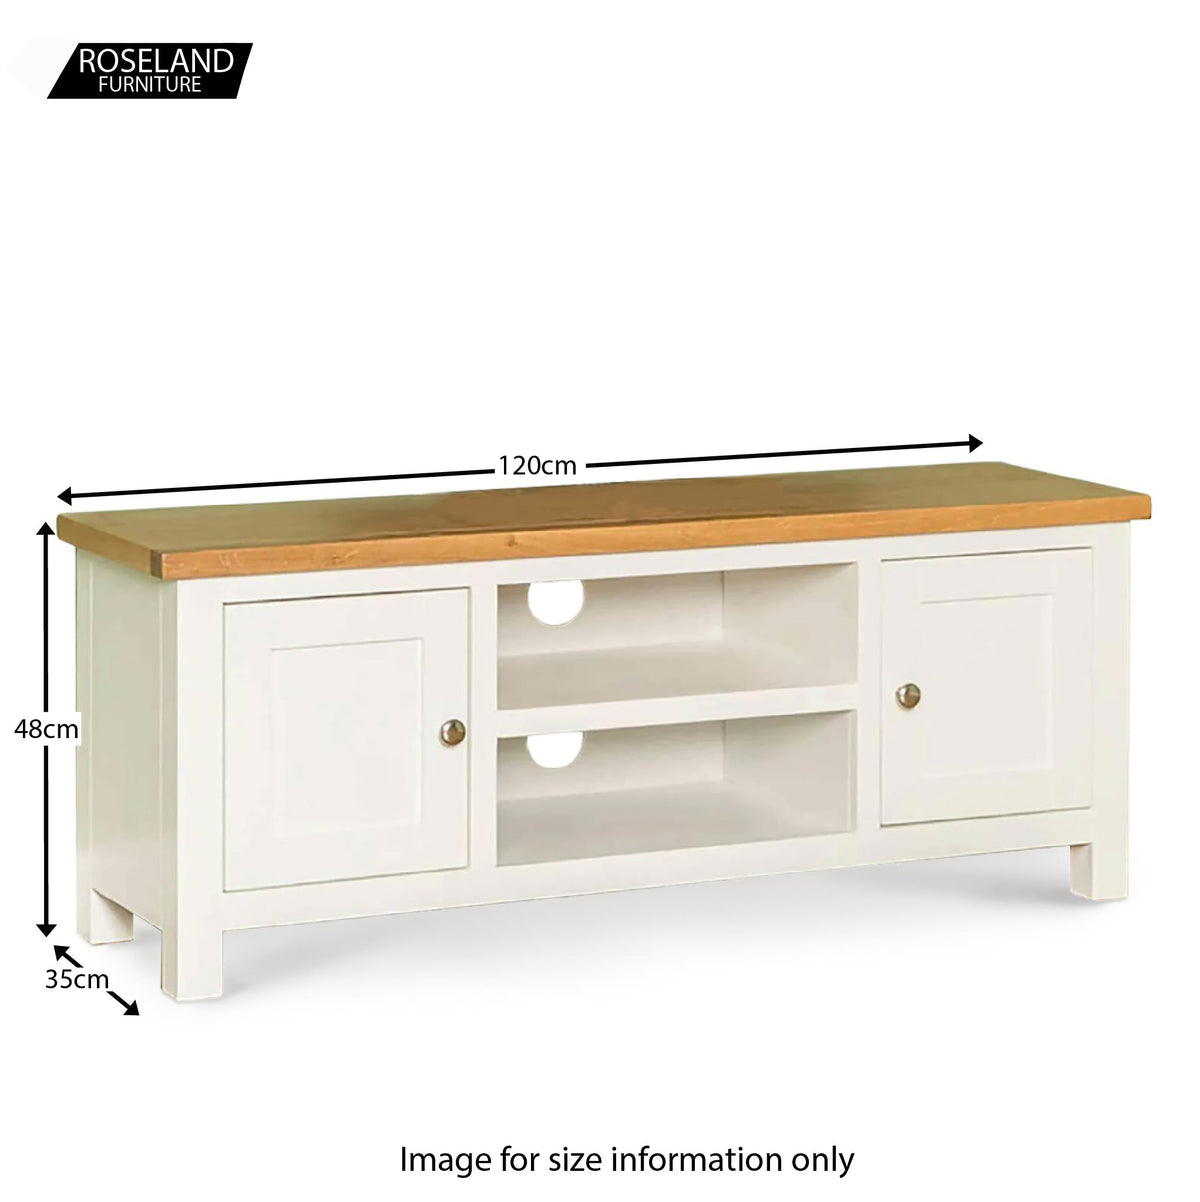 Farrow white 120cm TV Stand - Size Guide